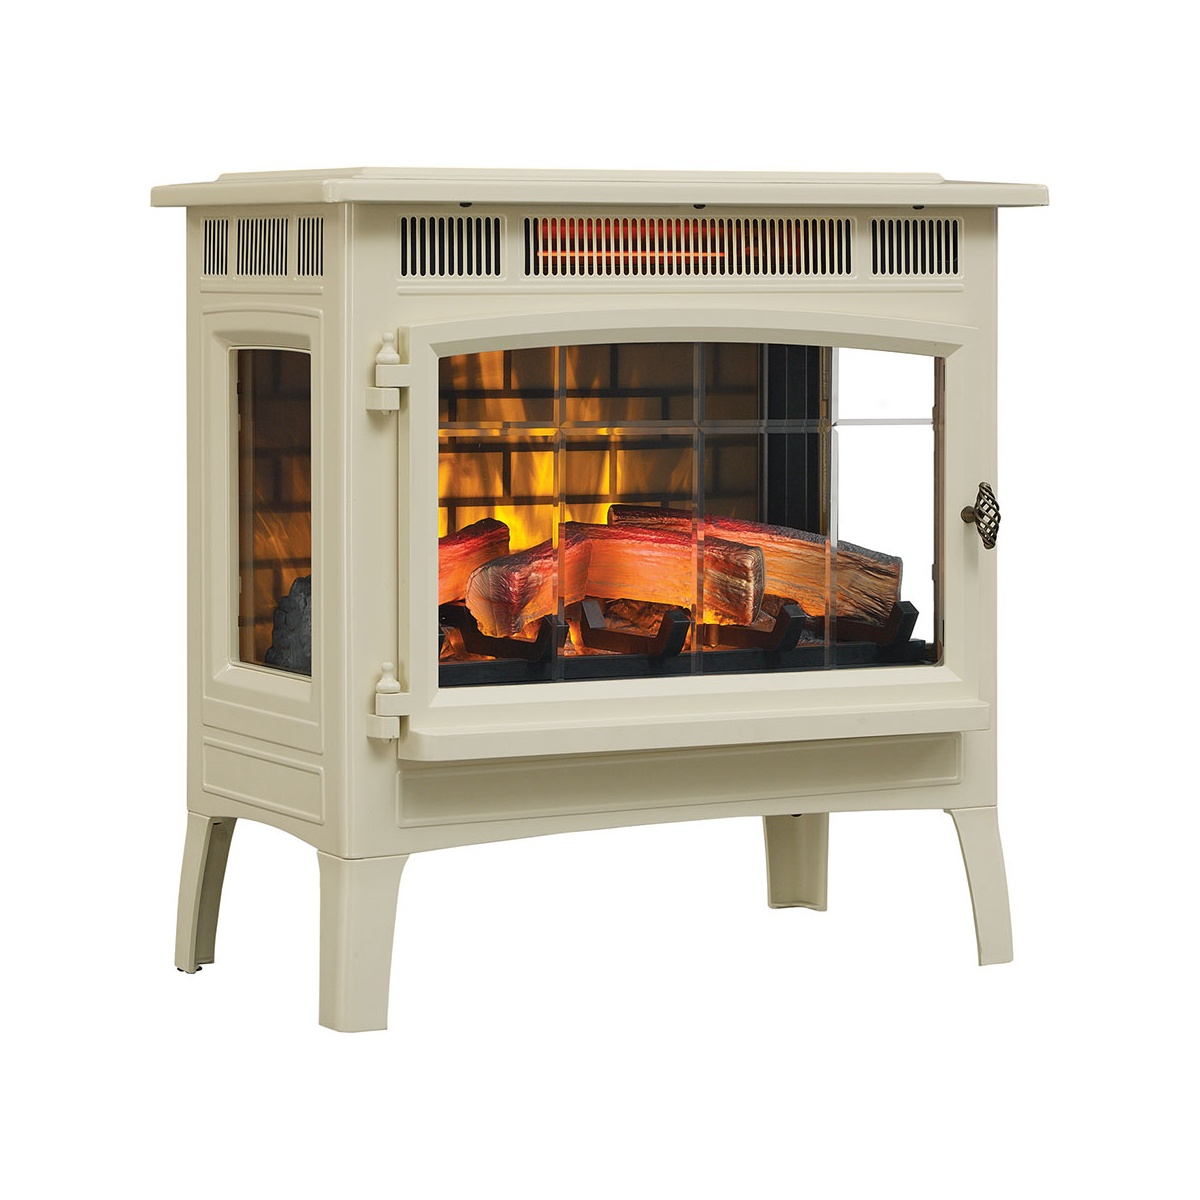 cream colored duraflame stove heater with logs and operable glass door and glass side viewing